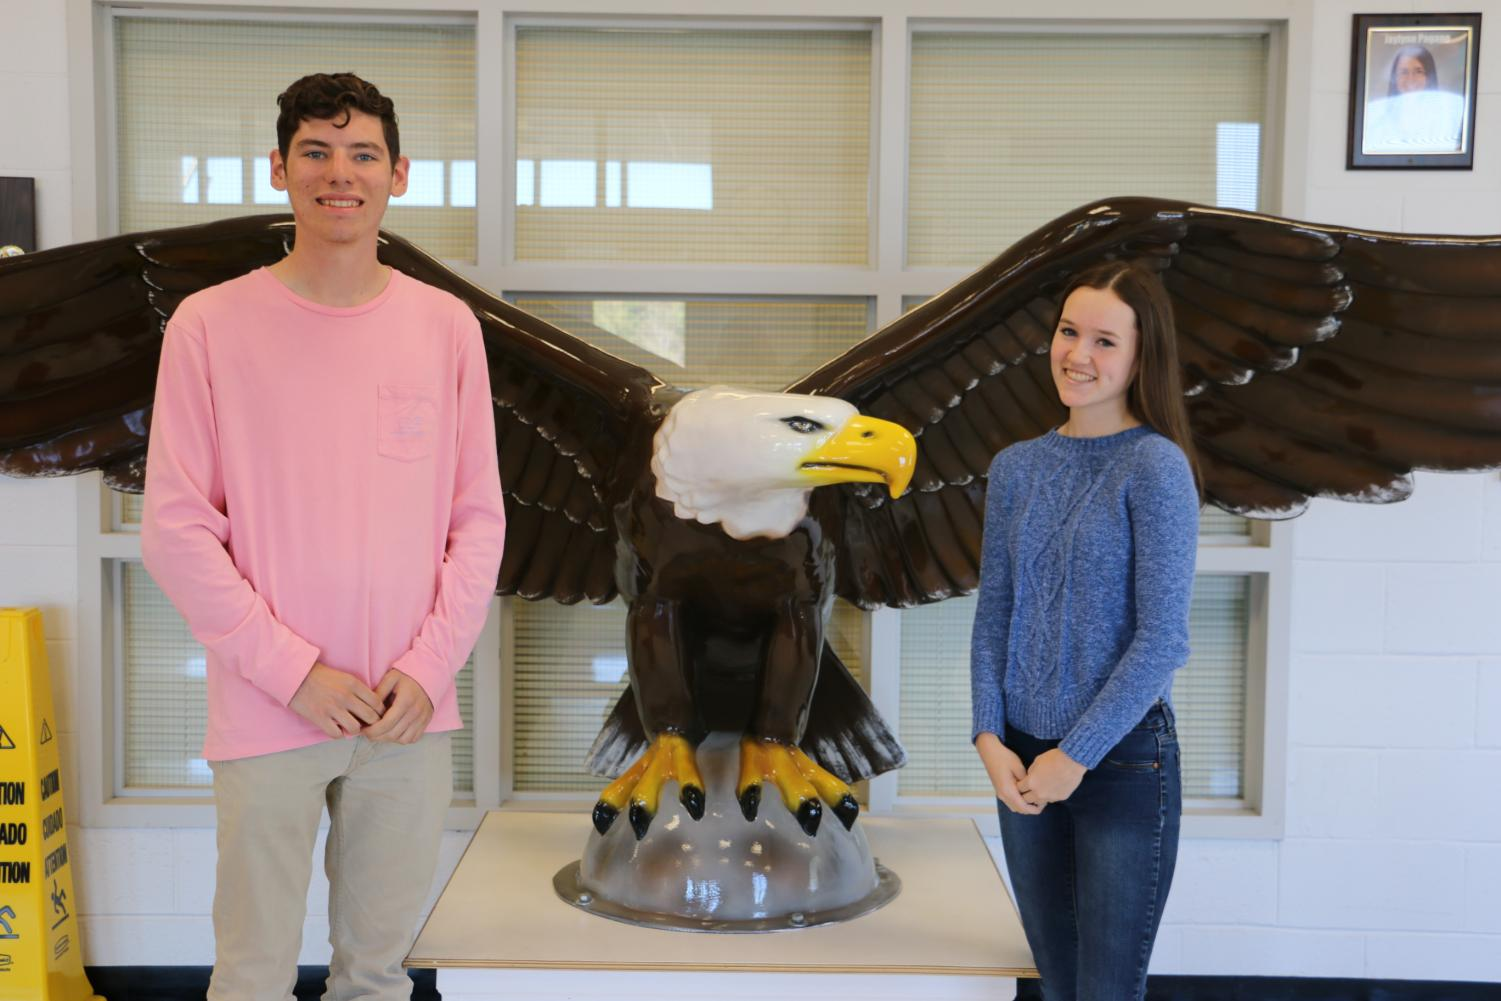 Jake Wilfred and Shannon O'Connell are the October 2018 Seniors of the Month.